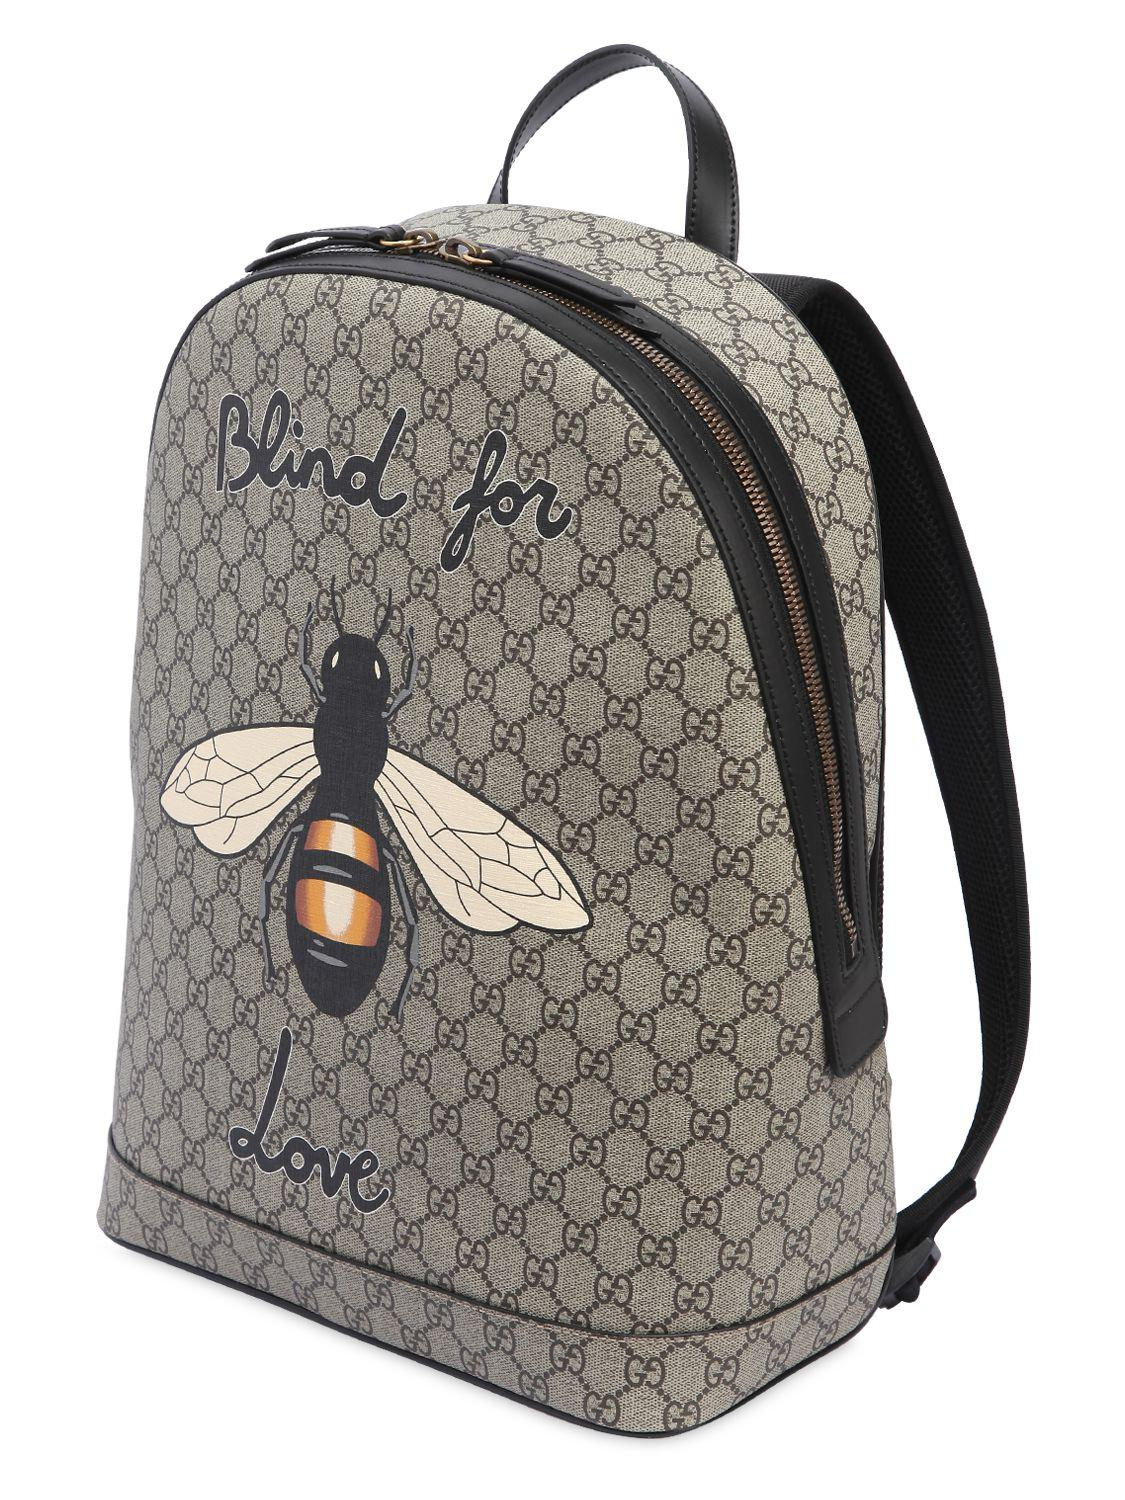 8284cd9679cf Gucci Bee Printed Gg Supreme Backpack in Natural for Men - Lyst